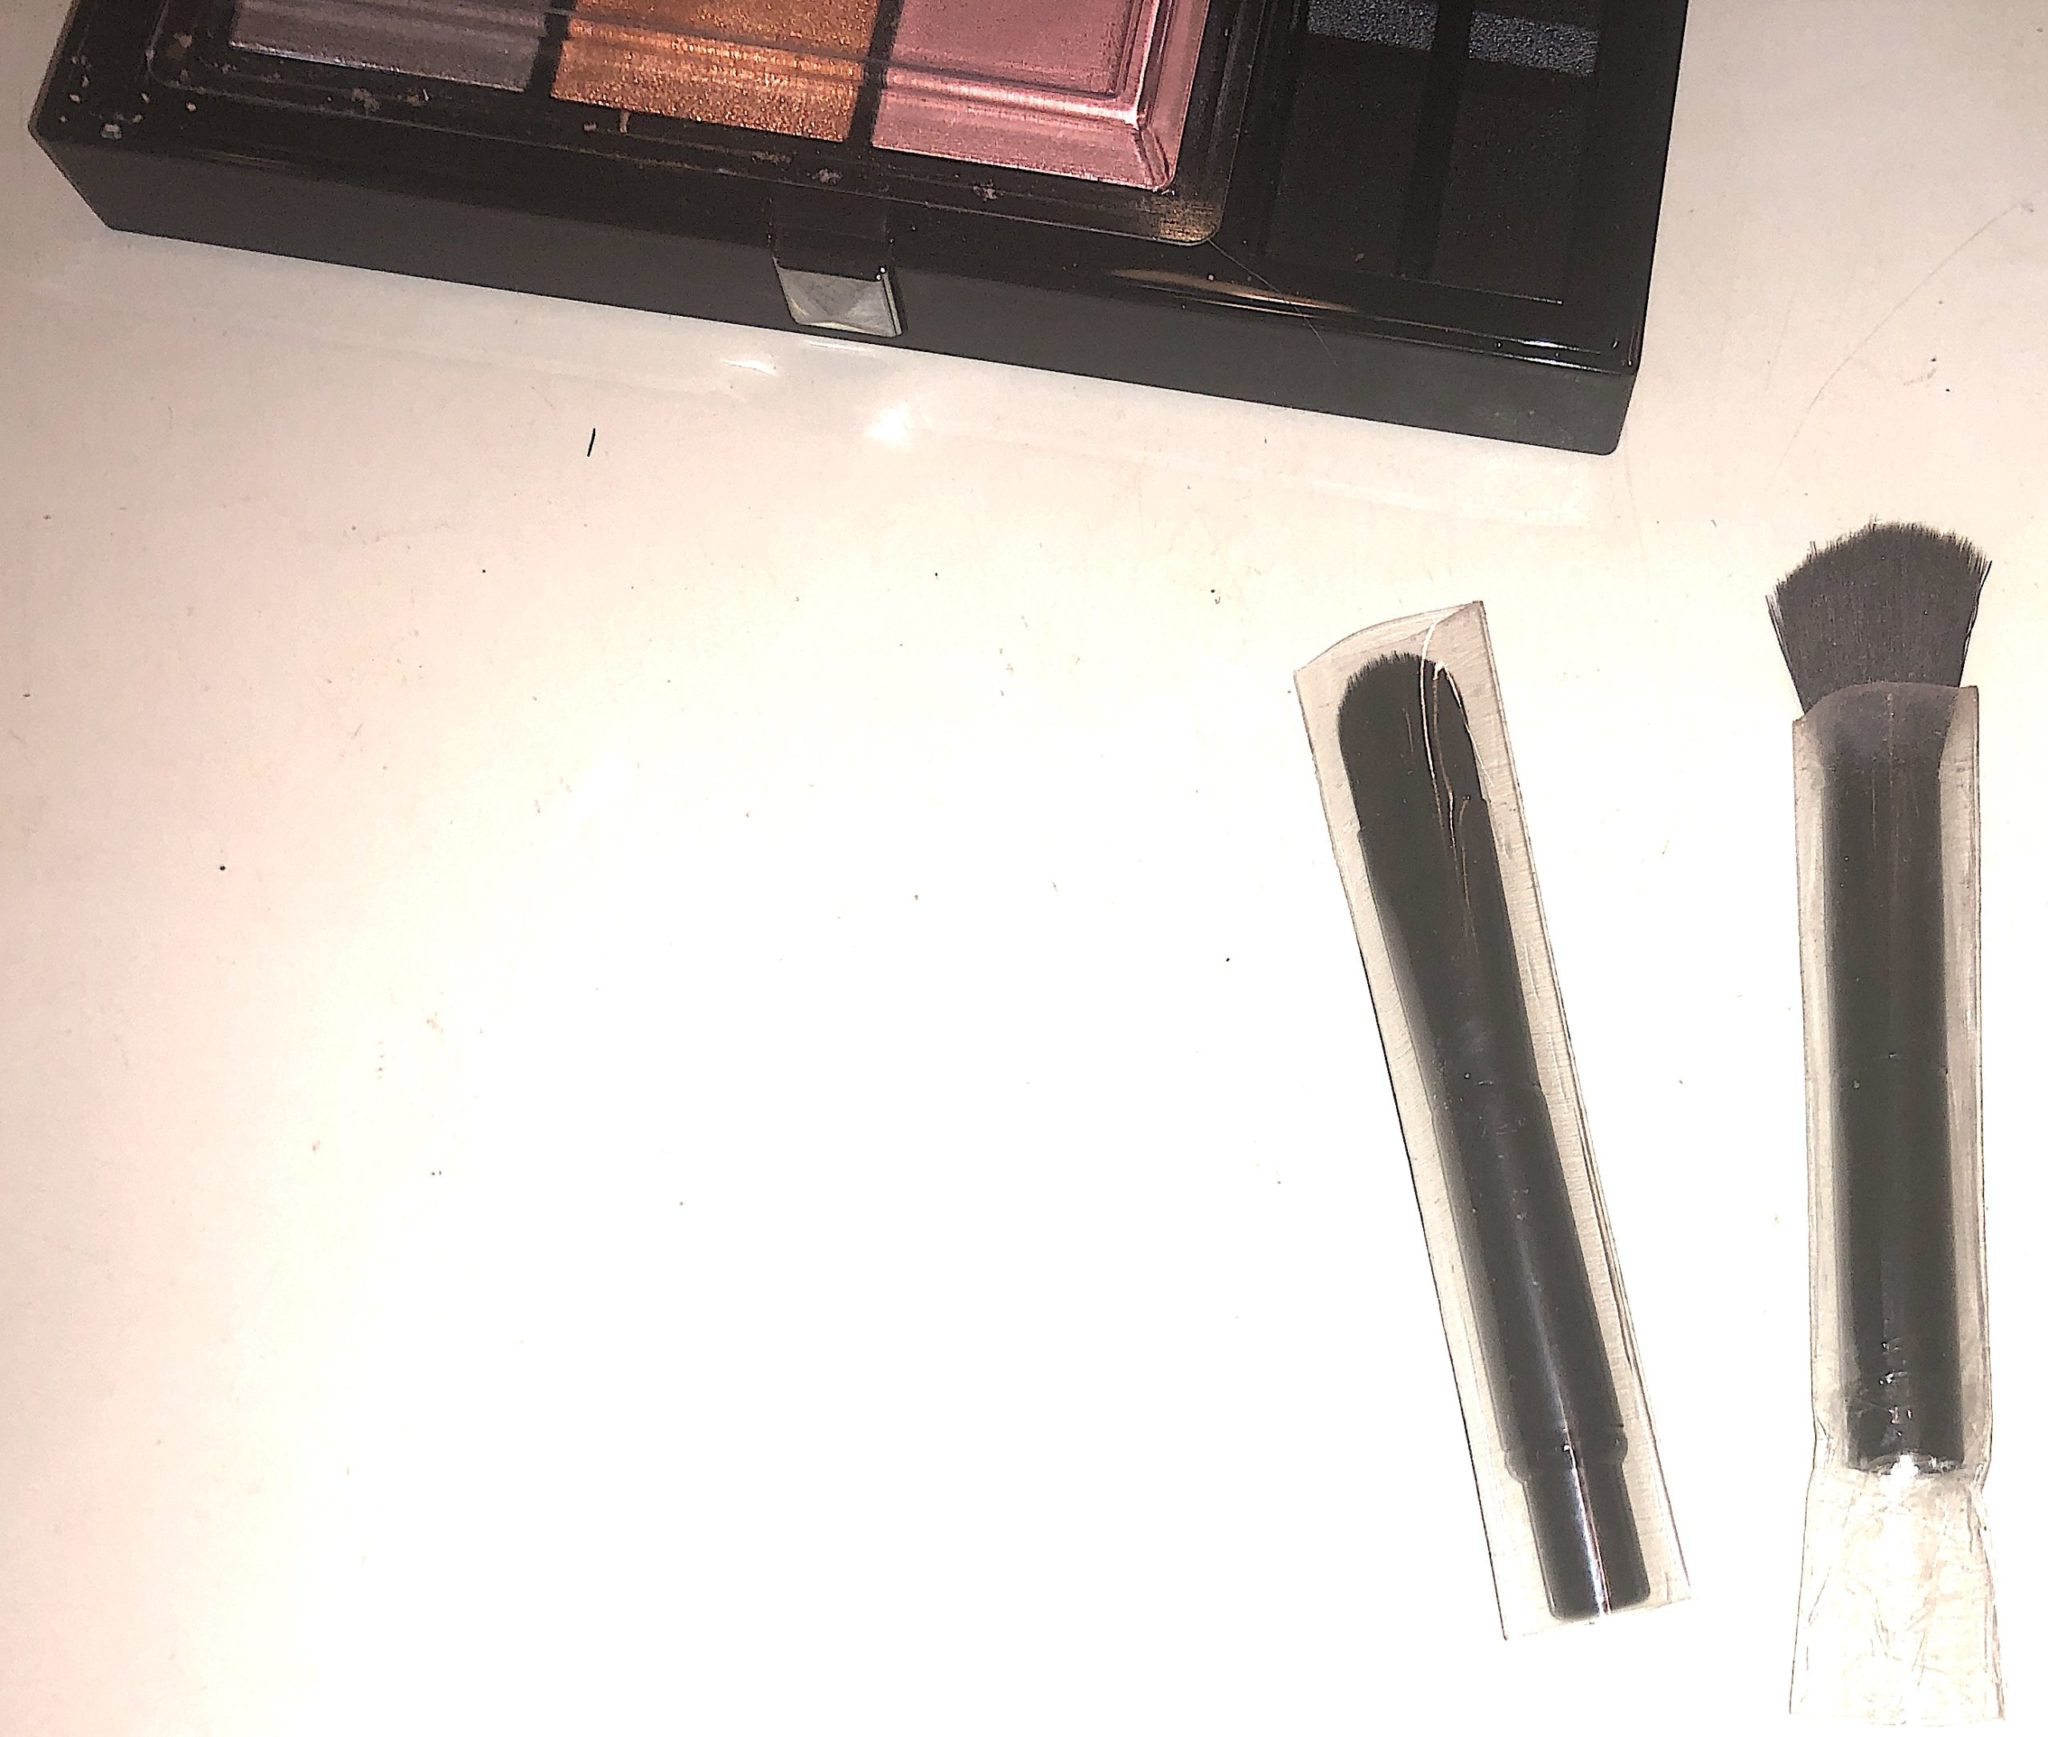 LE 9 DE GIVENCHY DOUBLE-ENDED EYESHADOW BRUSH